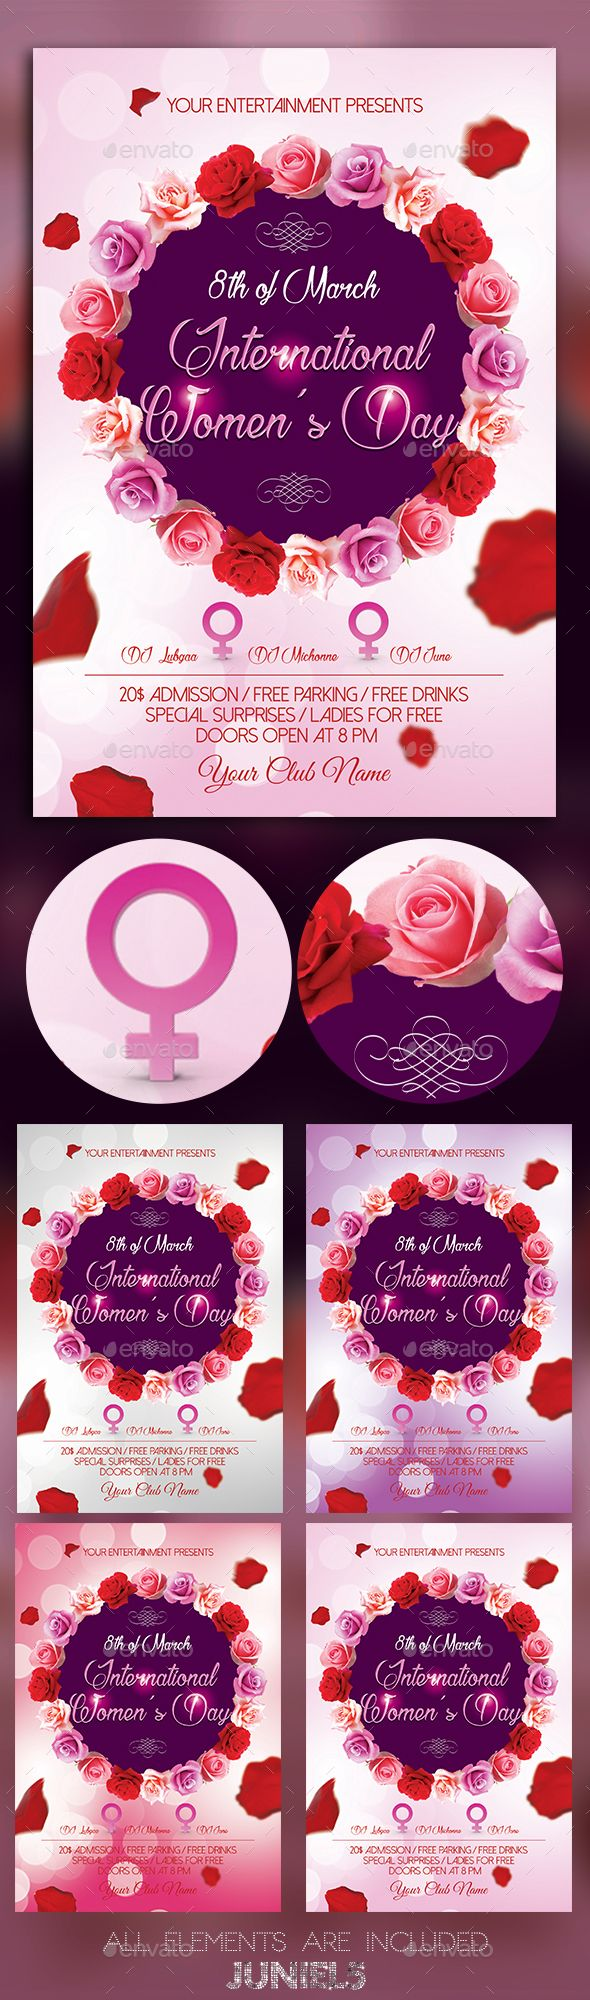 International Womens Day Flyer Template PSD. Download here: http://graphicriver.net/item/international-womens-day-/14963899?ref=ksioks